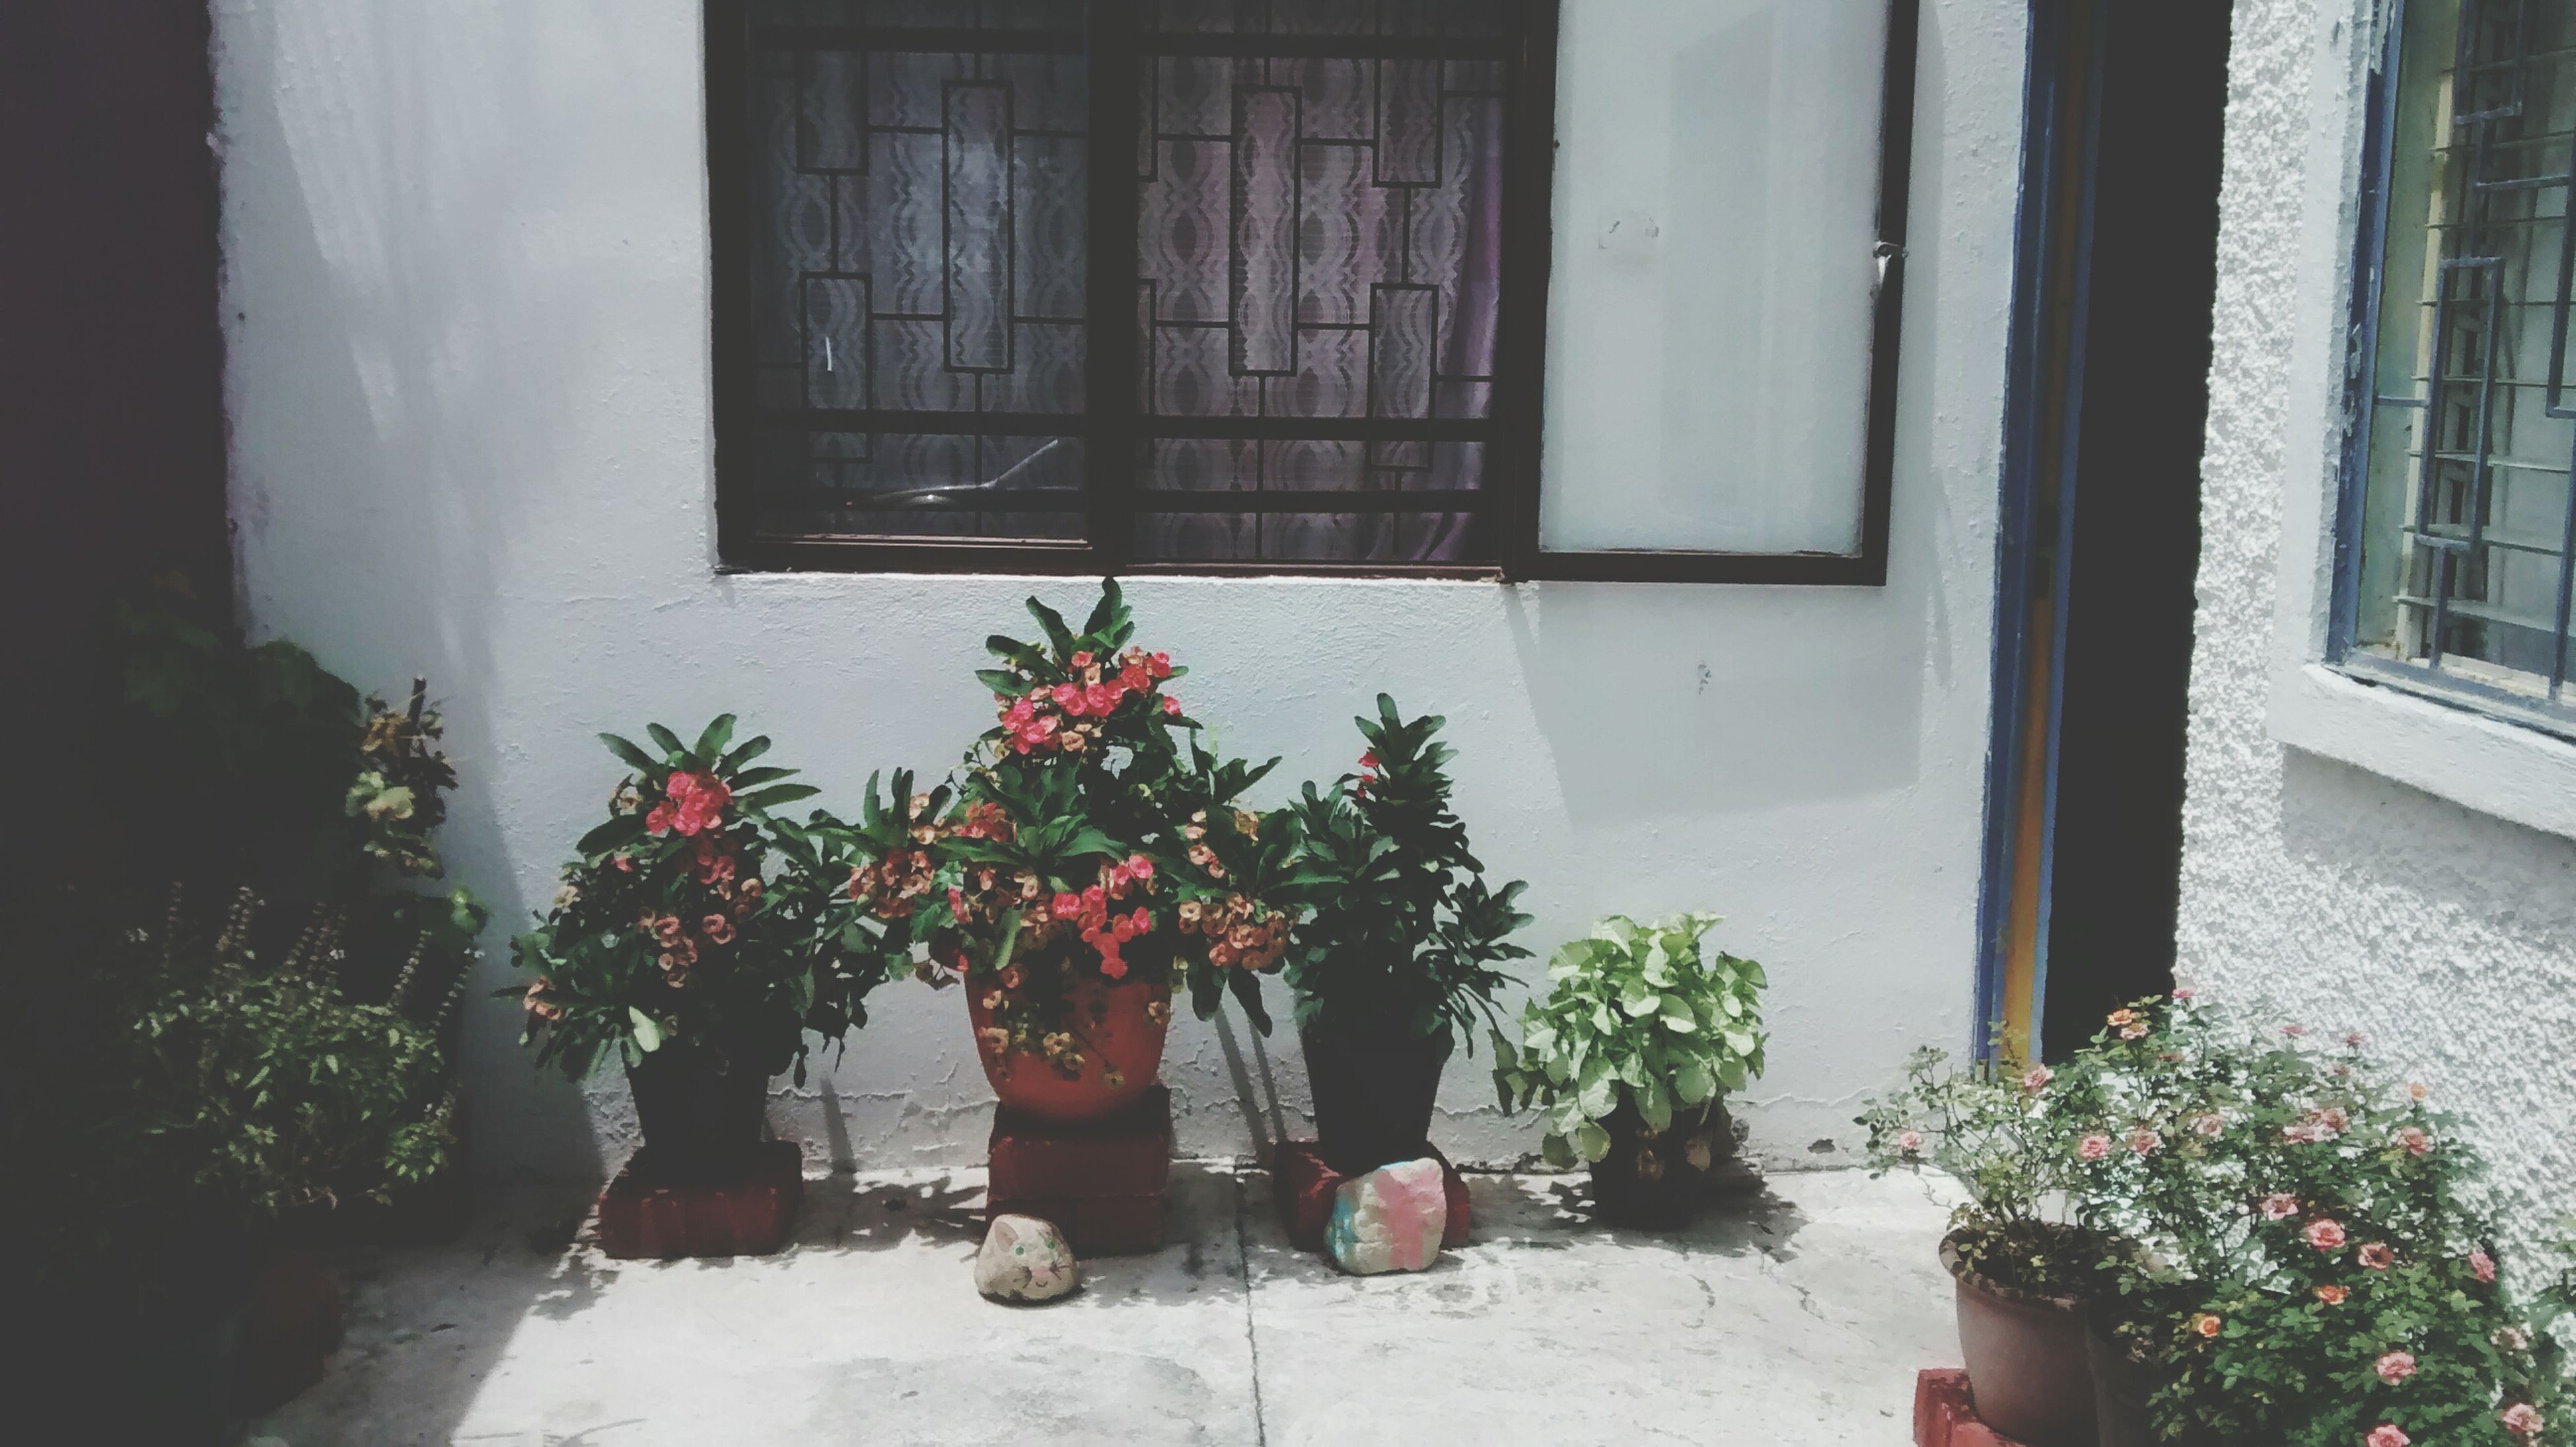 window, building exterior, architecture, potted plant, flower, built structure, plant, growth, house, door, flower pot, window sill, closed, red, residential structure, front or back yard, day, pot plant, freshness, glass - material